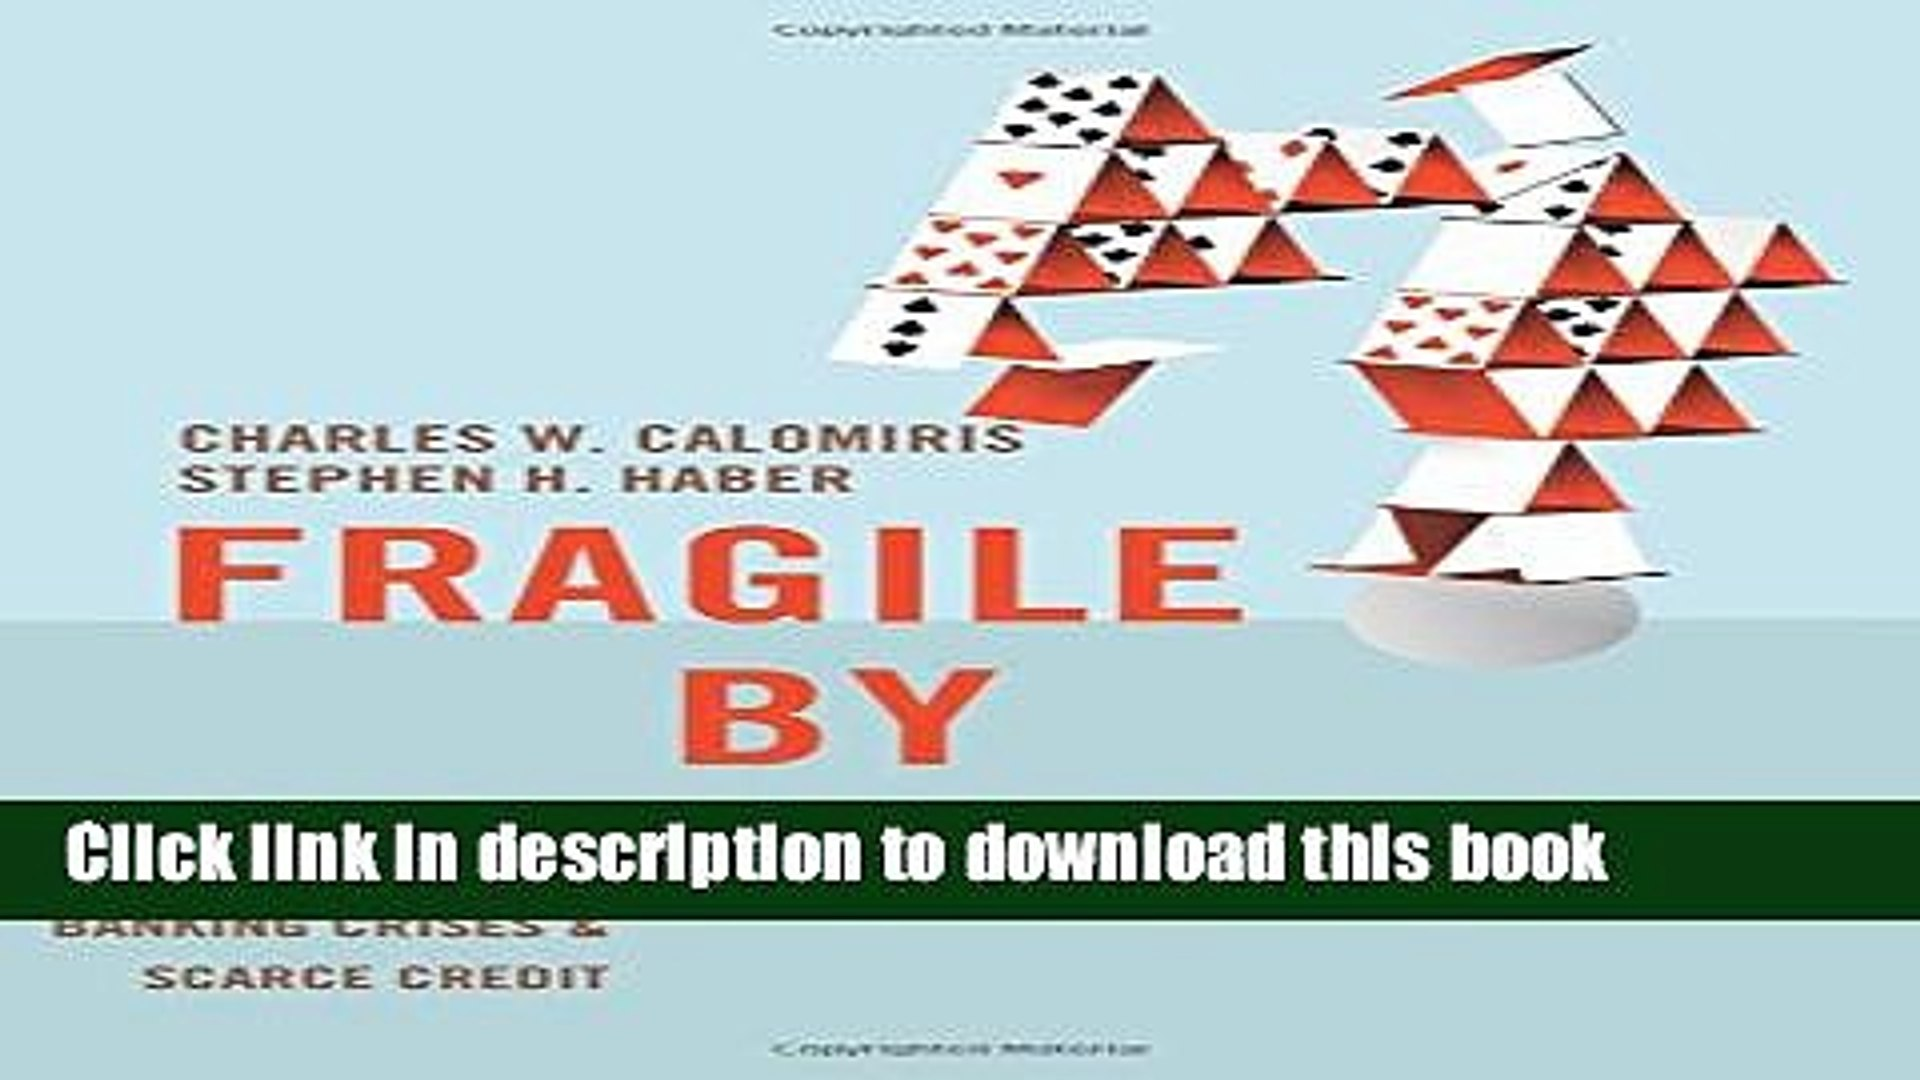 [Popular] Fragile by Design: The Political Origins of Banking Crises and Scarce Credit Kindle Online